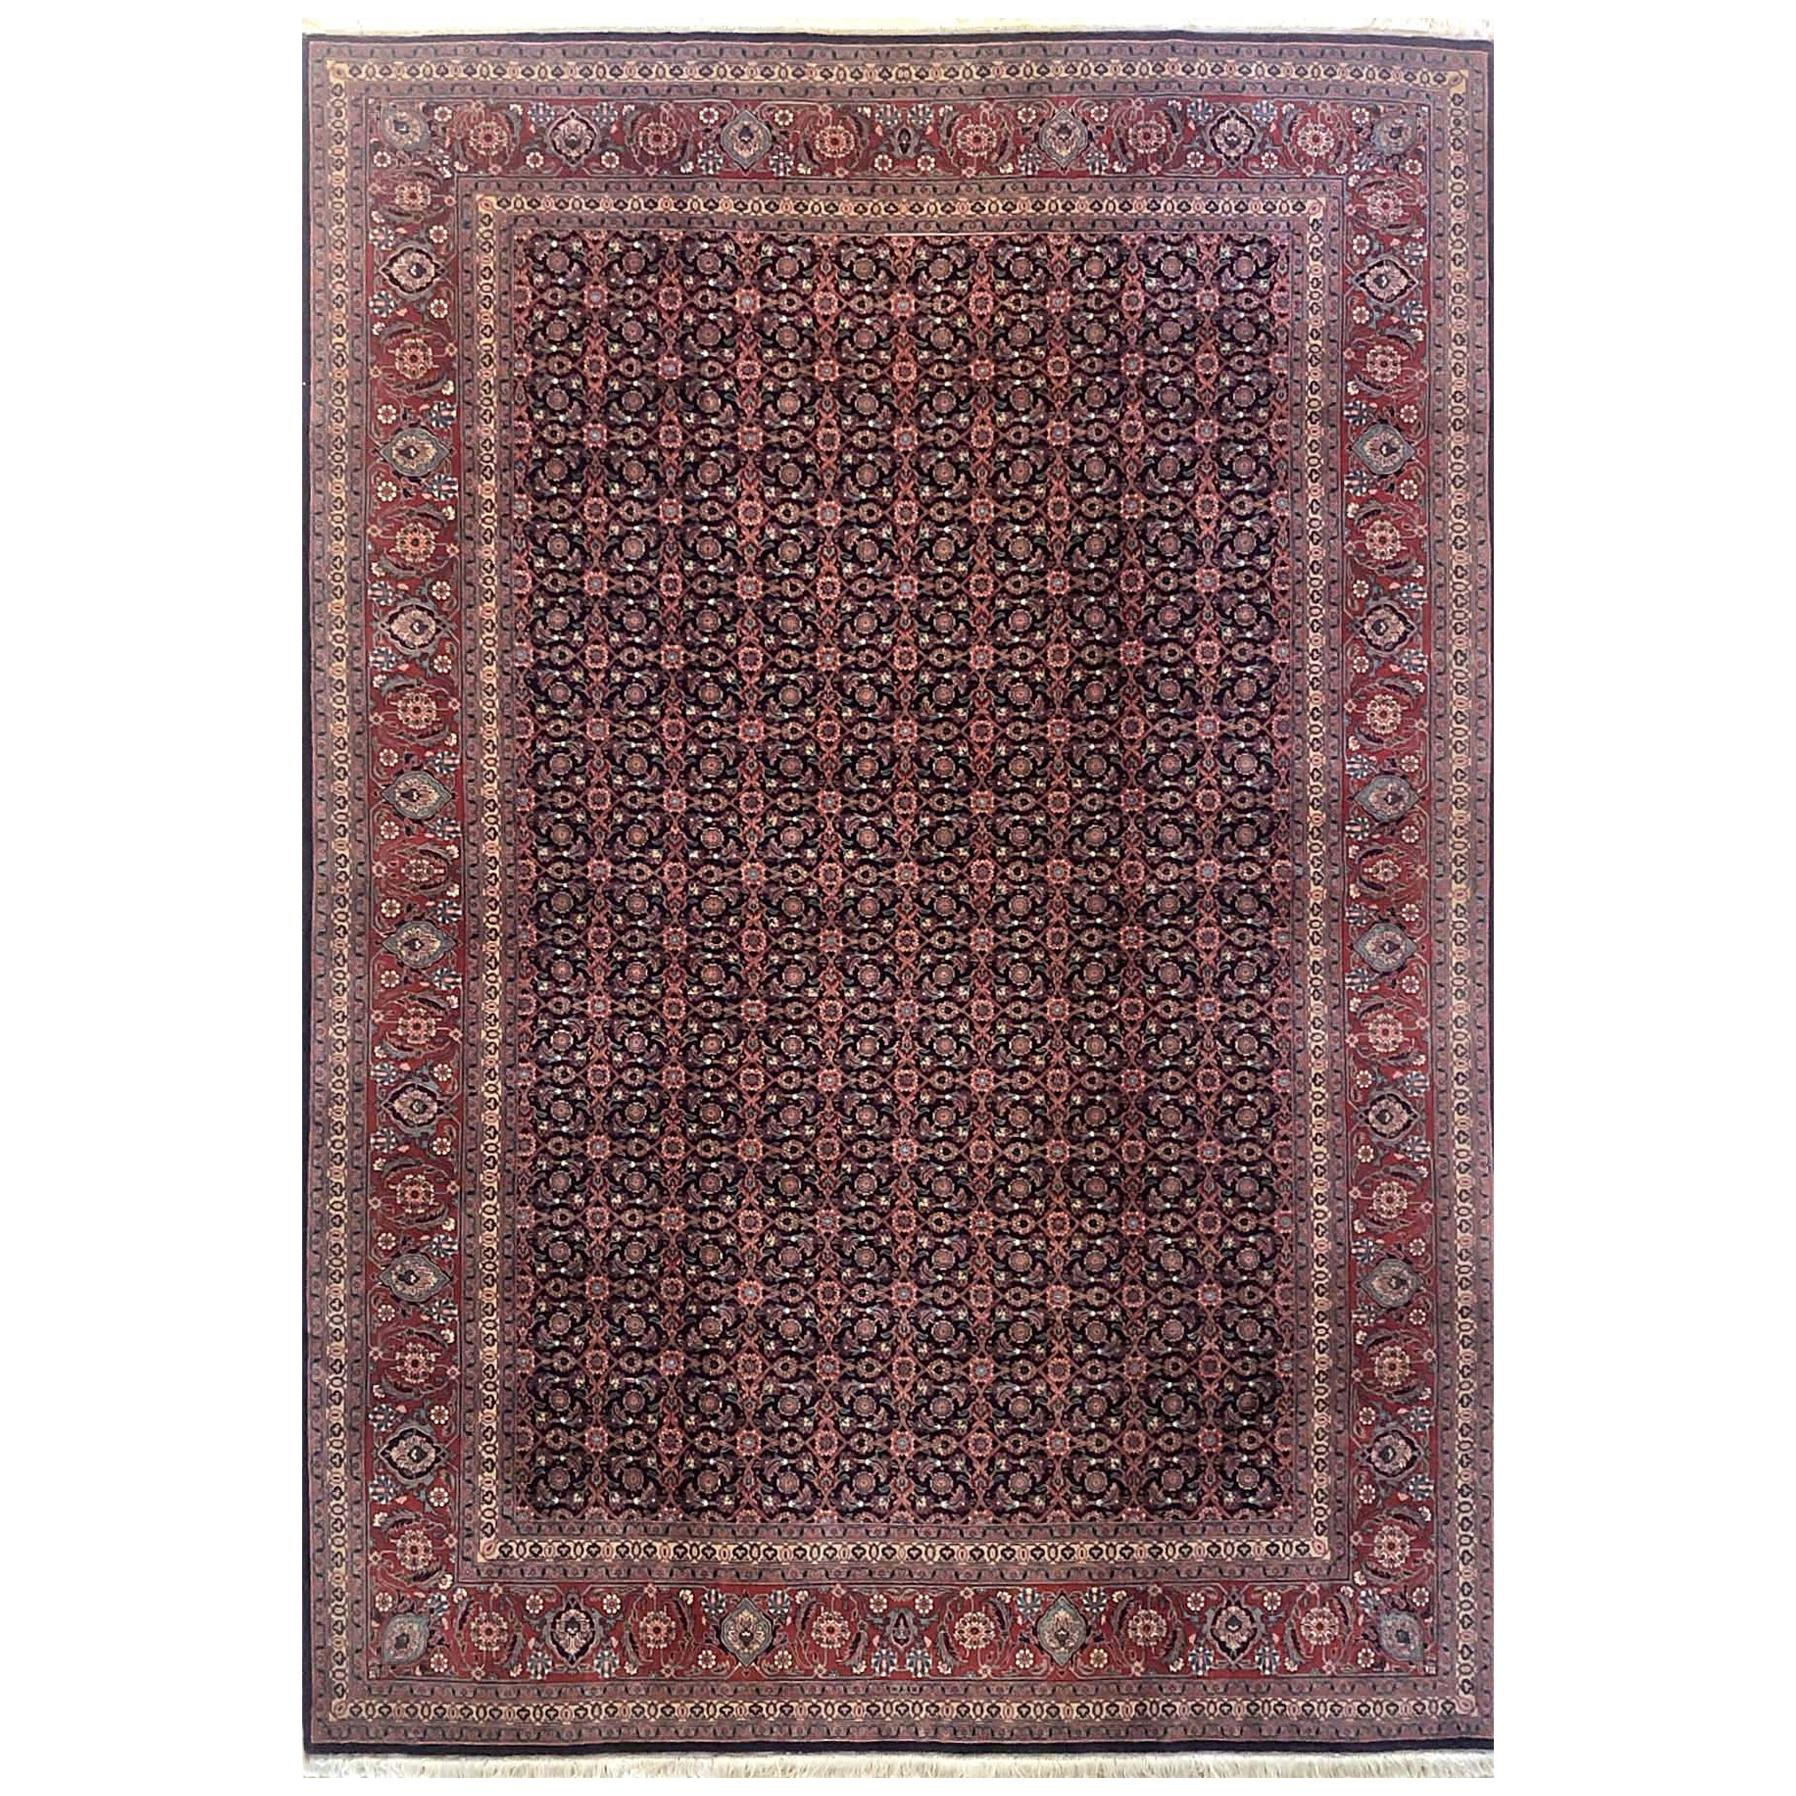 Persian Hand Knotted All-Over Herati Red Tabriz Runner Rug